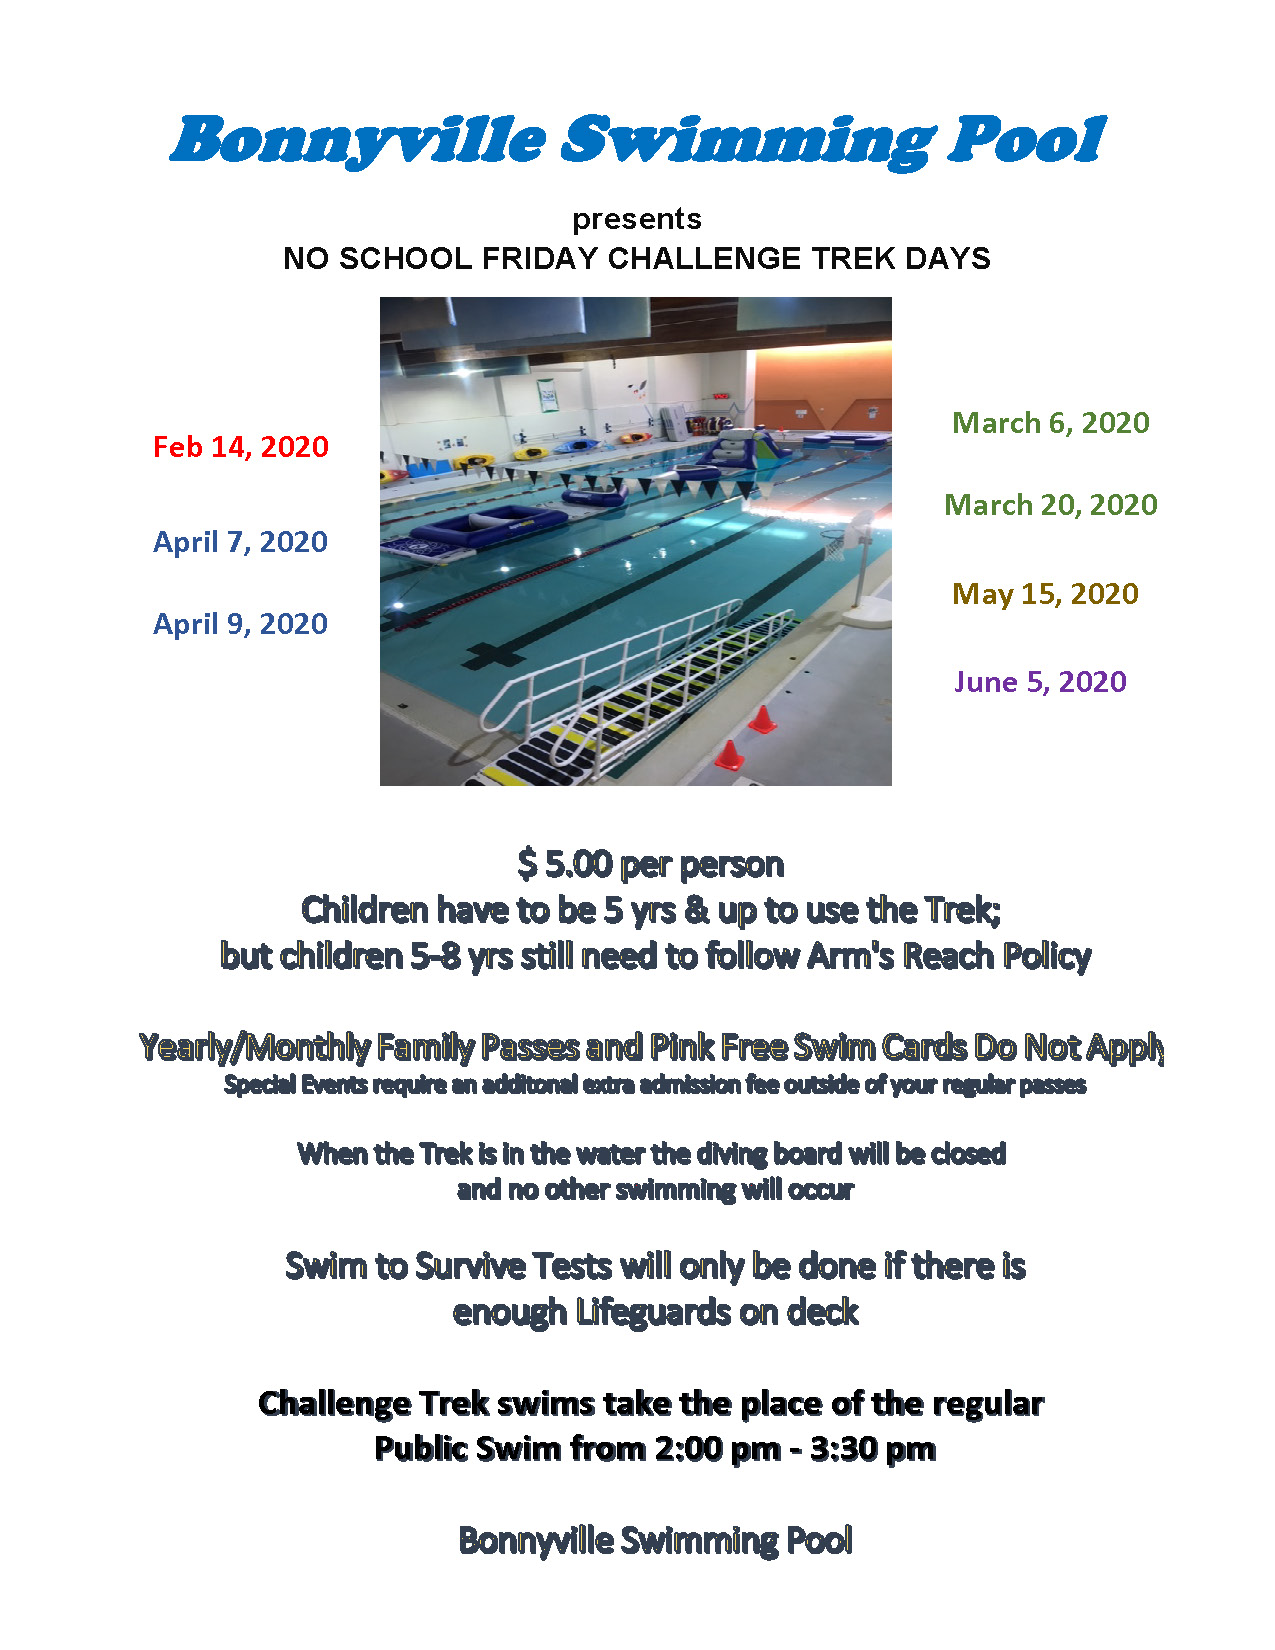 No School Friday Trek Days 2020